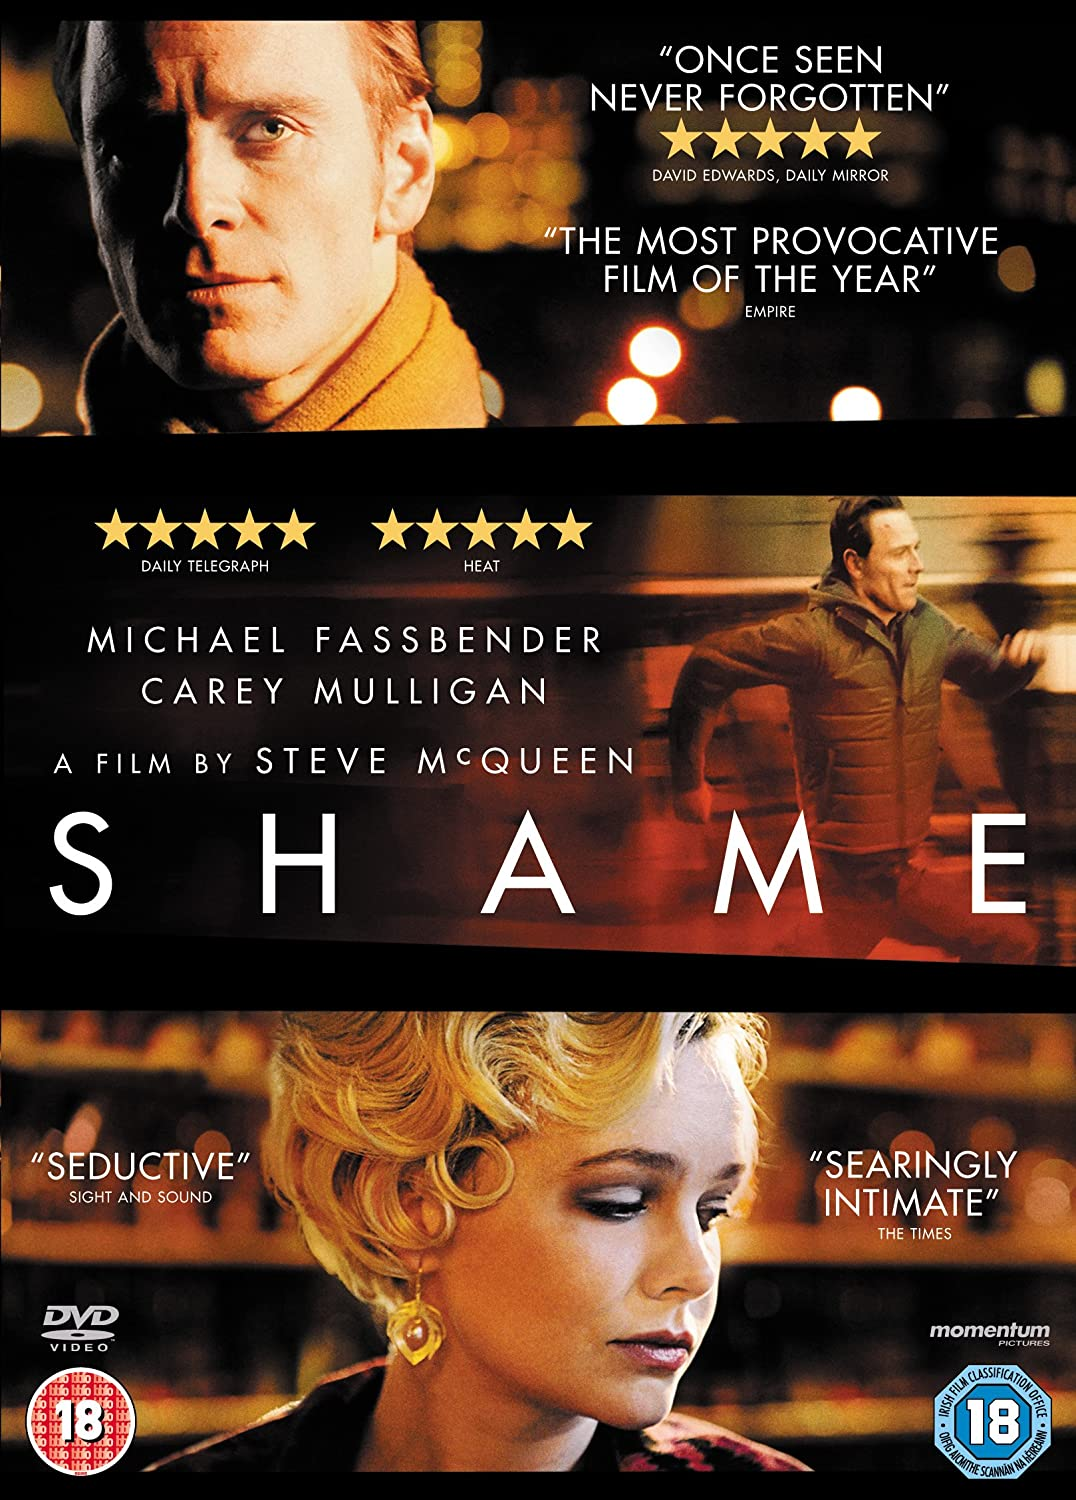 Shame (2011) Full Movie Free Download In 300MB